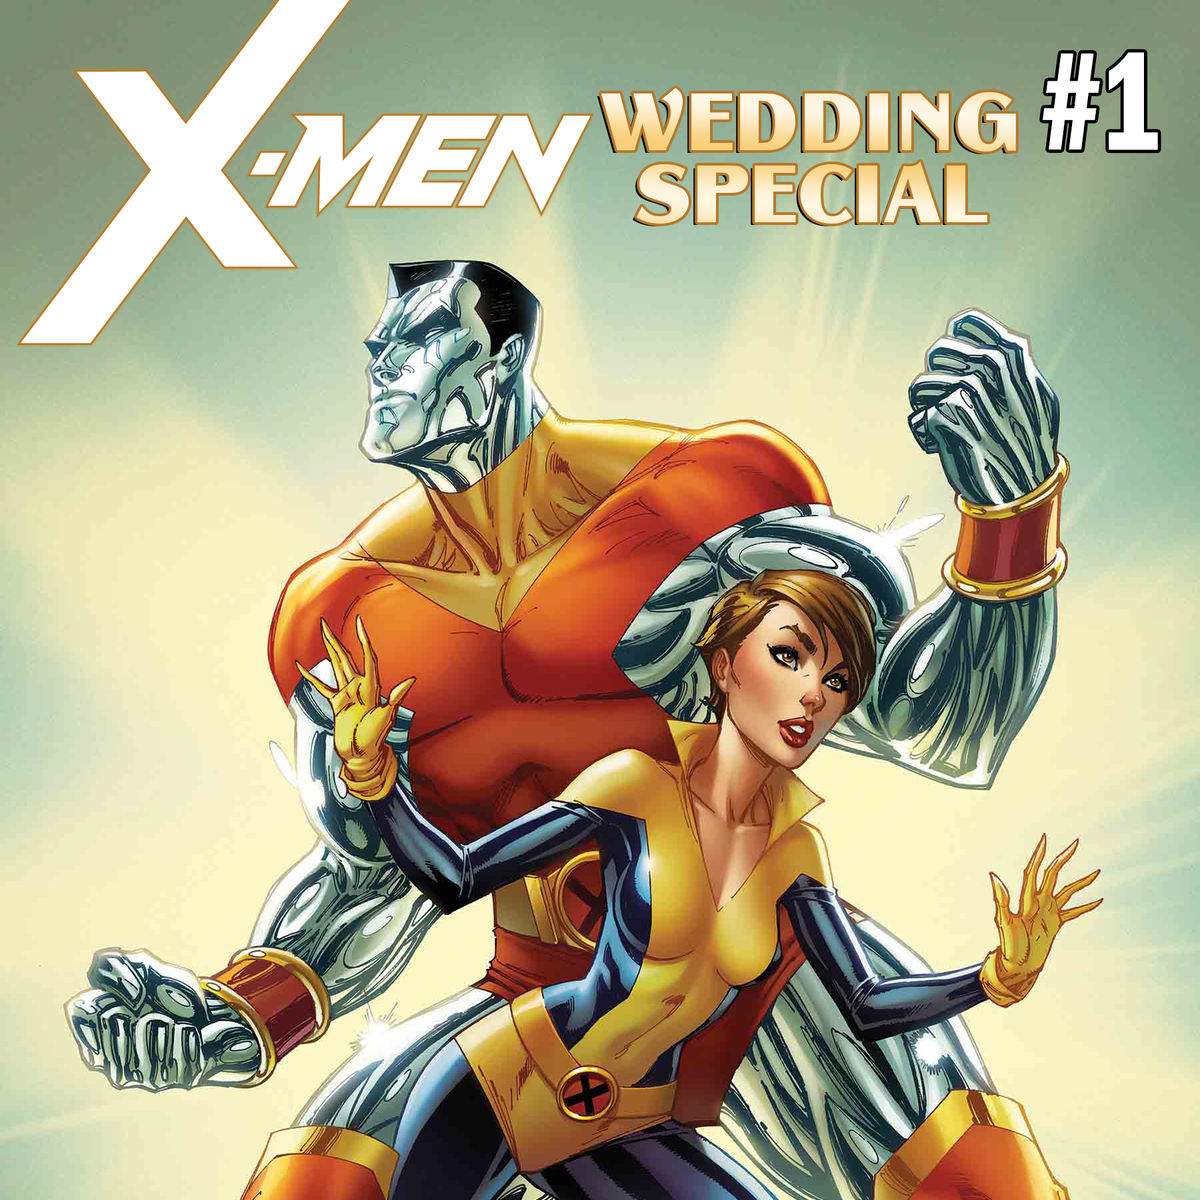 xmen_wedding_special_001.jpg